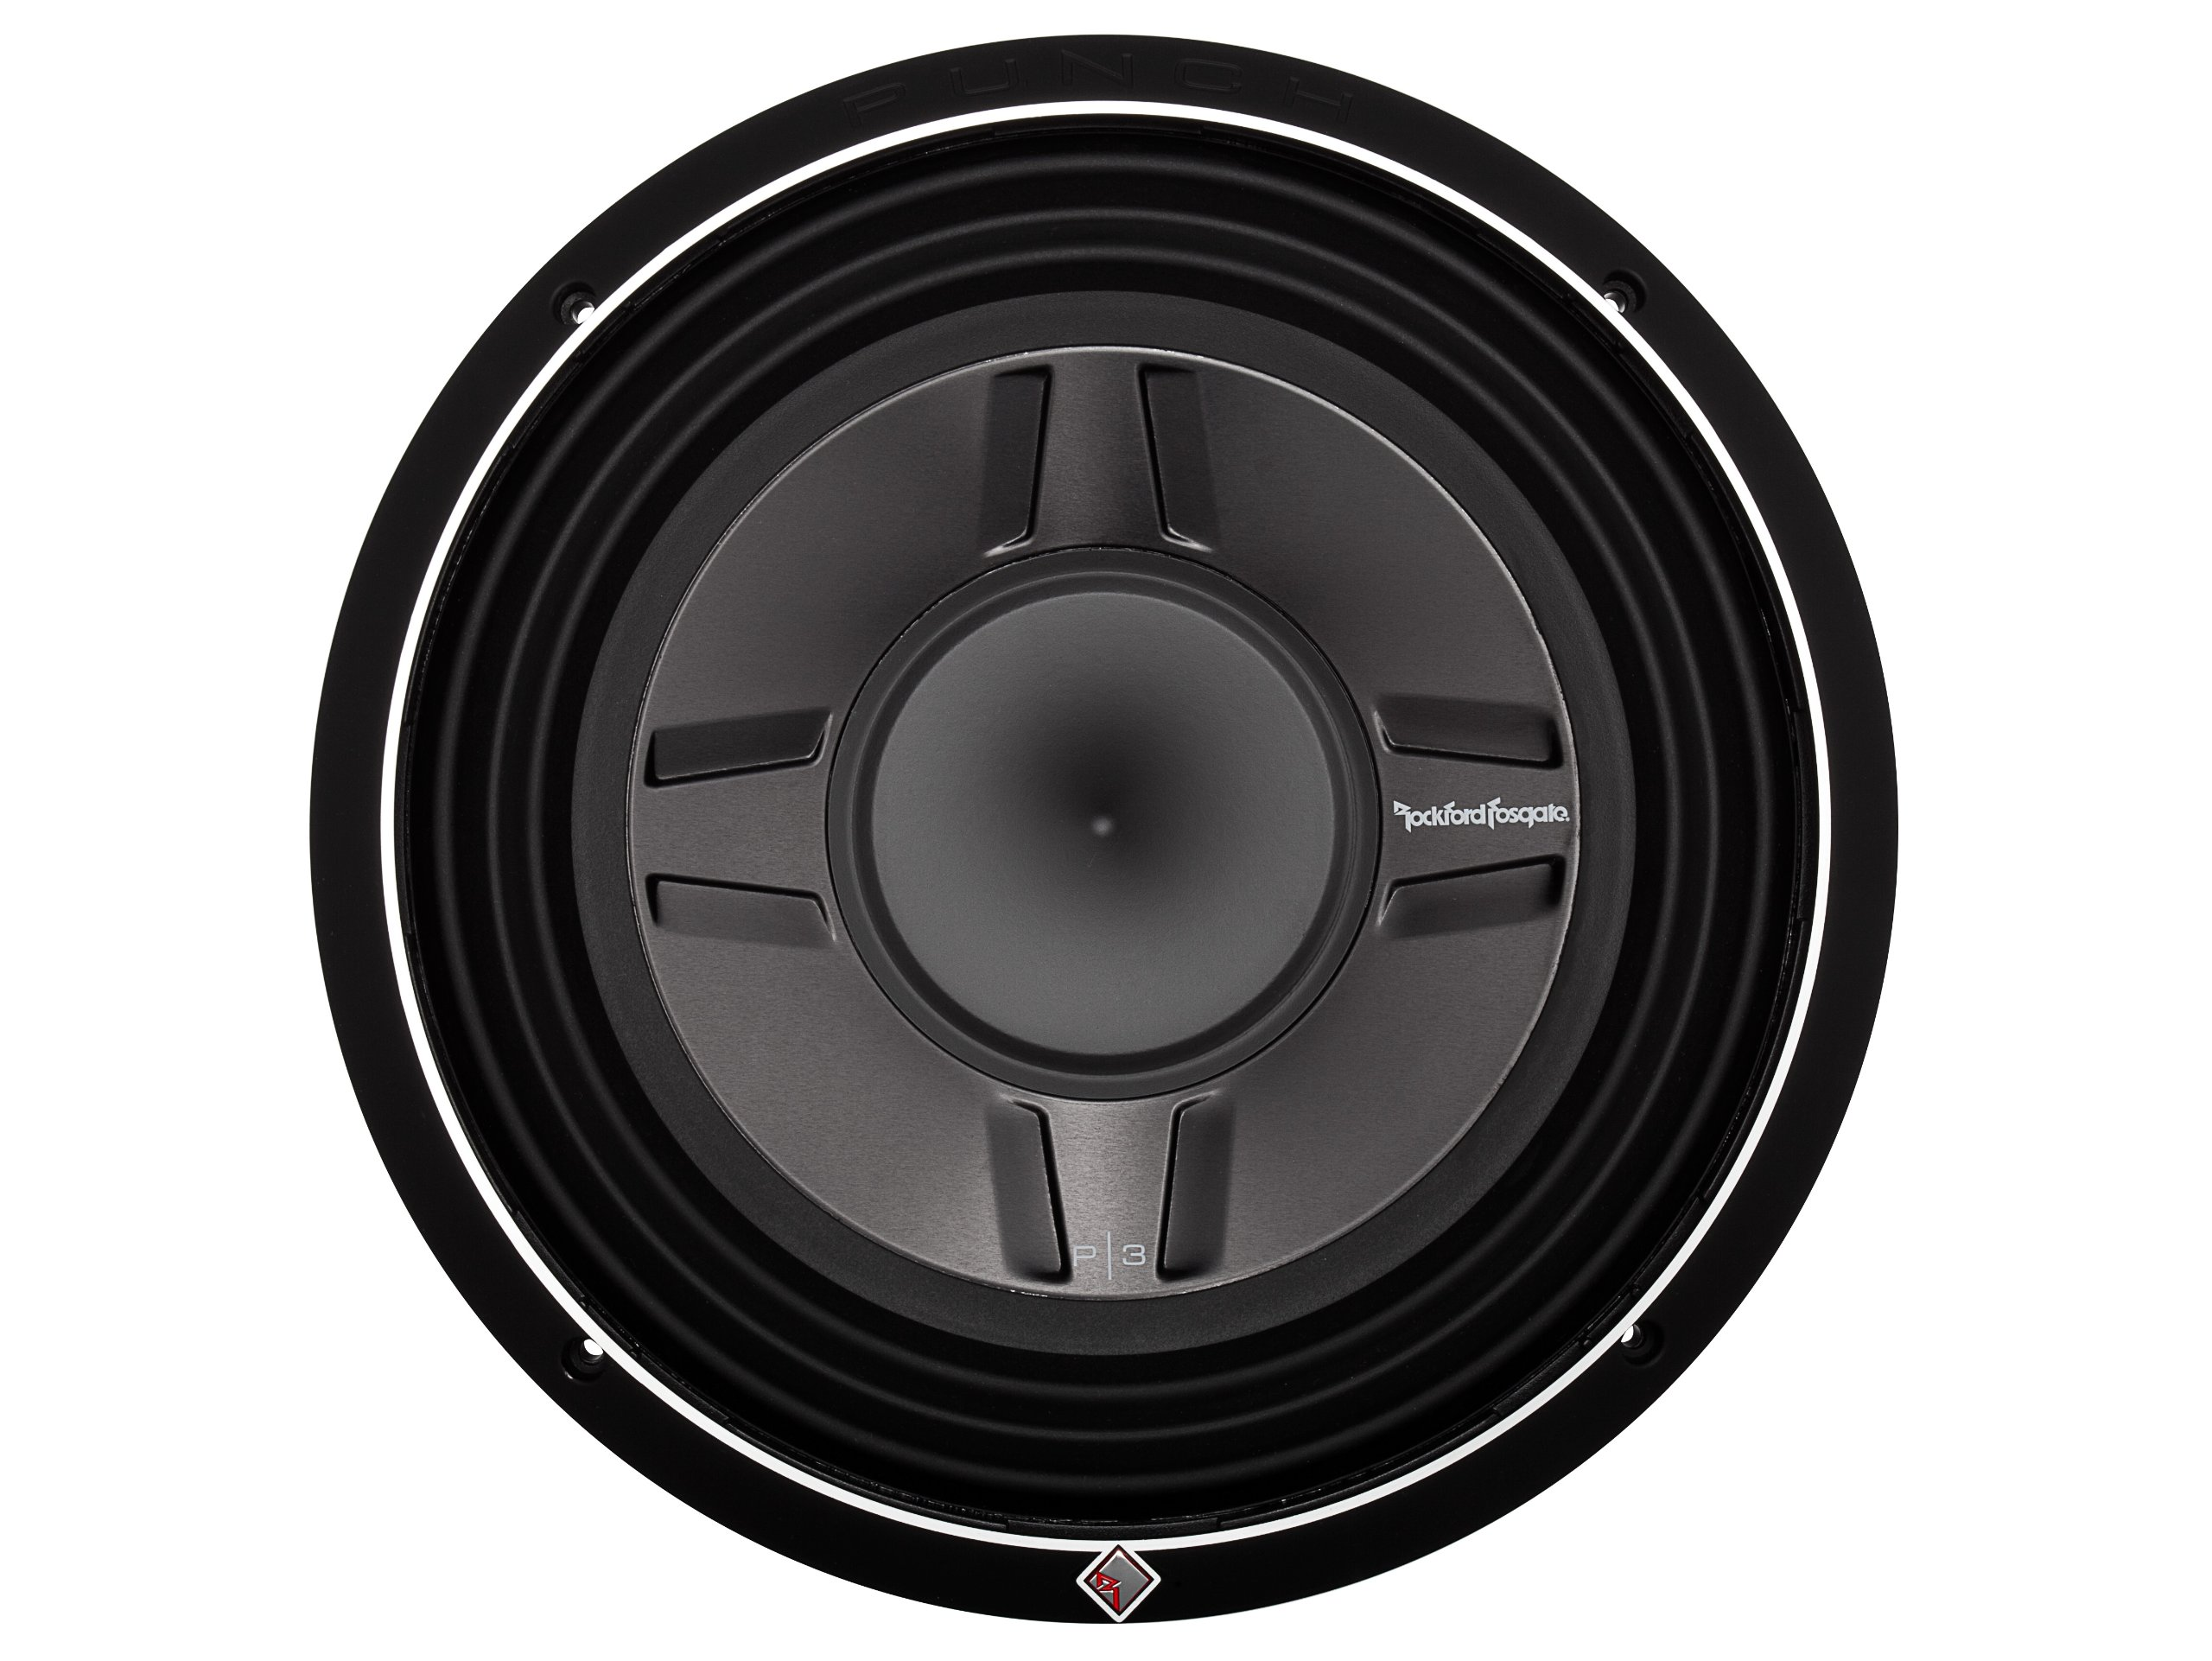 Pin Rockford Fosgate P3 12 Subwoofer Images To Pinterest Hx2 Top For On 11 2018 0213